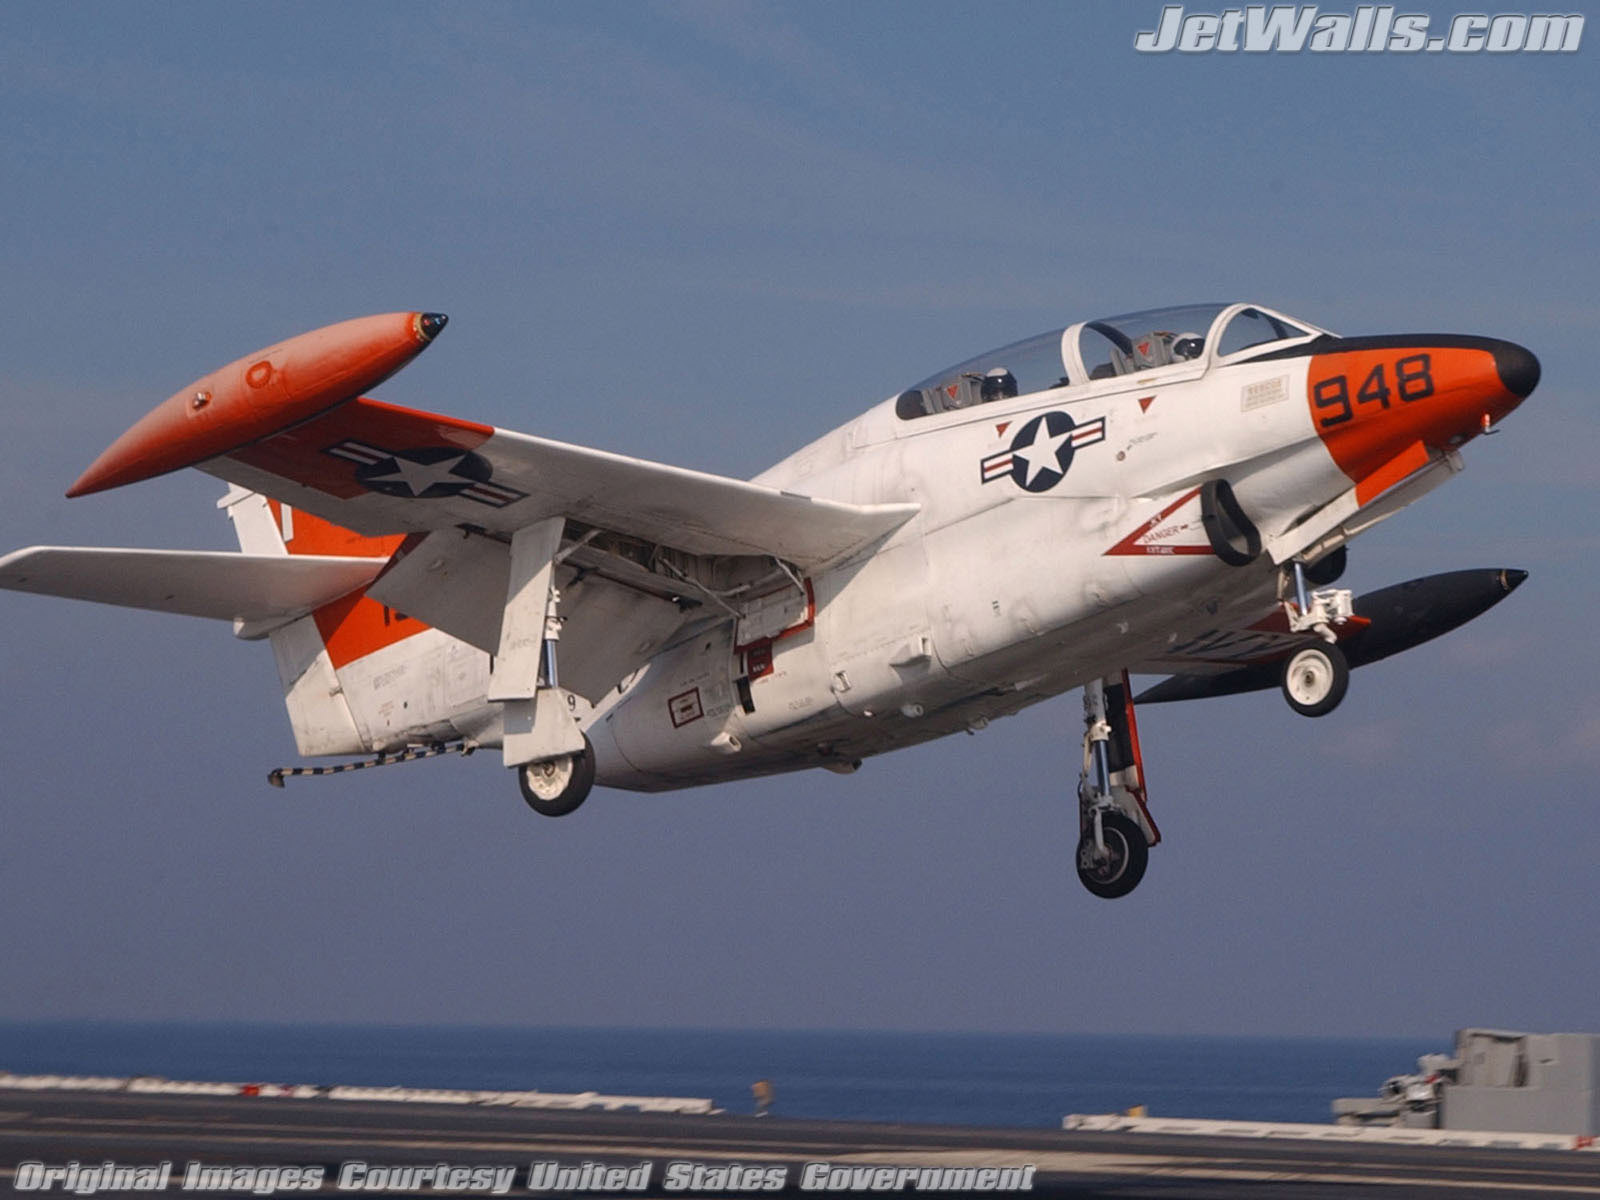 """T-2C Buckeye"" - Wallpaper No. 23 of 101. Right click for saving options."